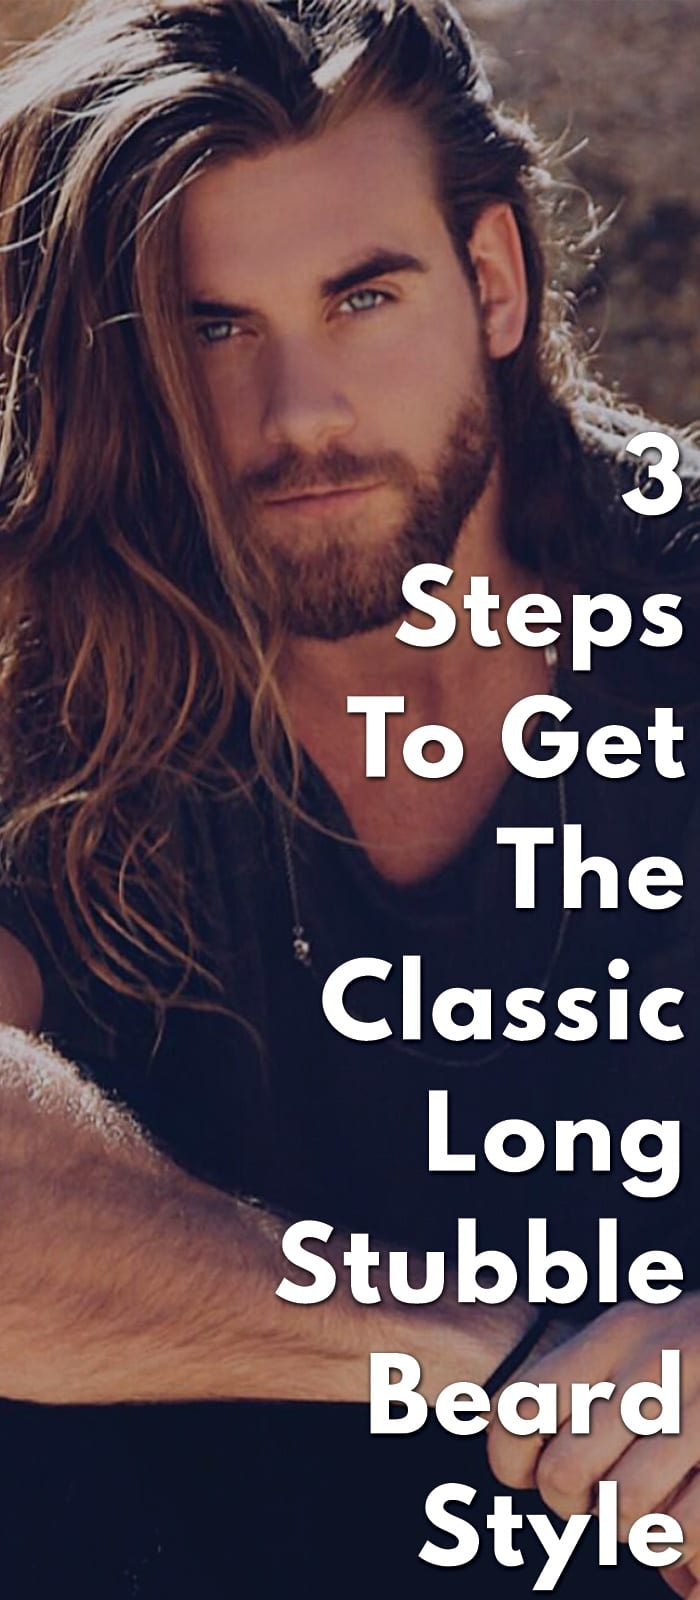 3-Steps-To-Get-The-Classic-Long-Stubble-Beard-Style.